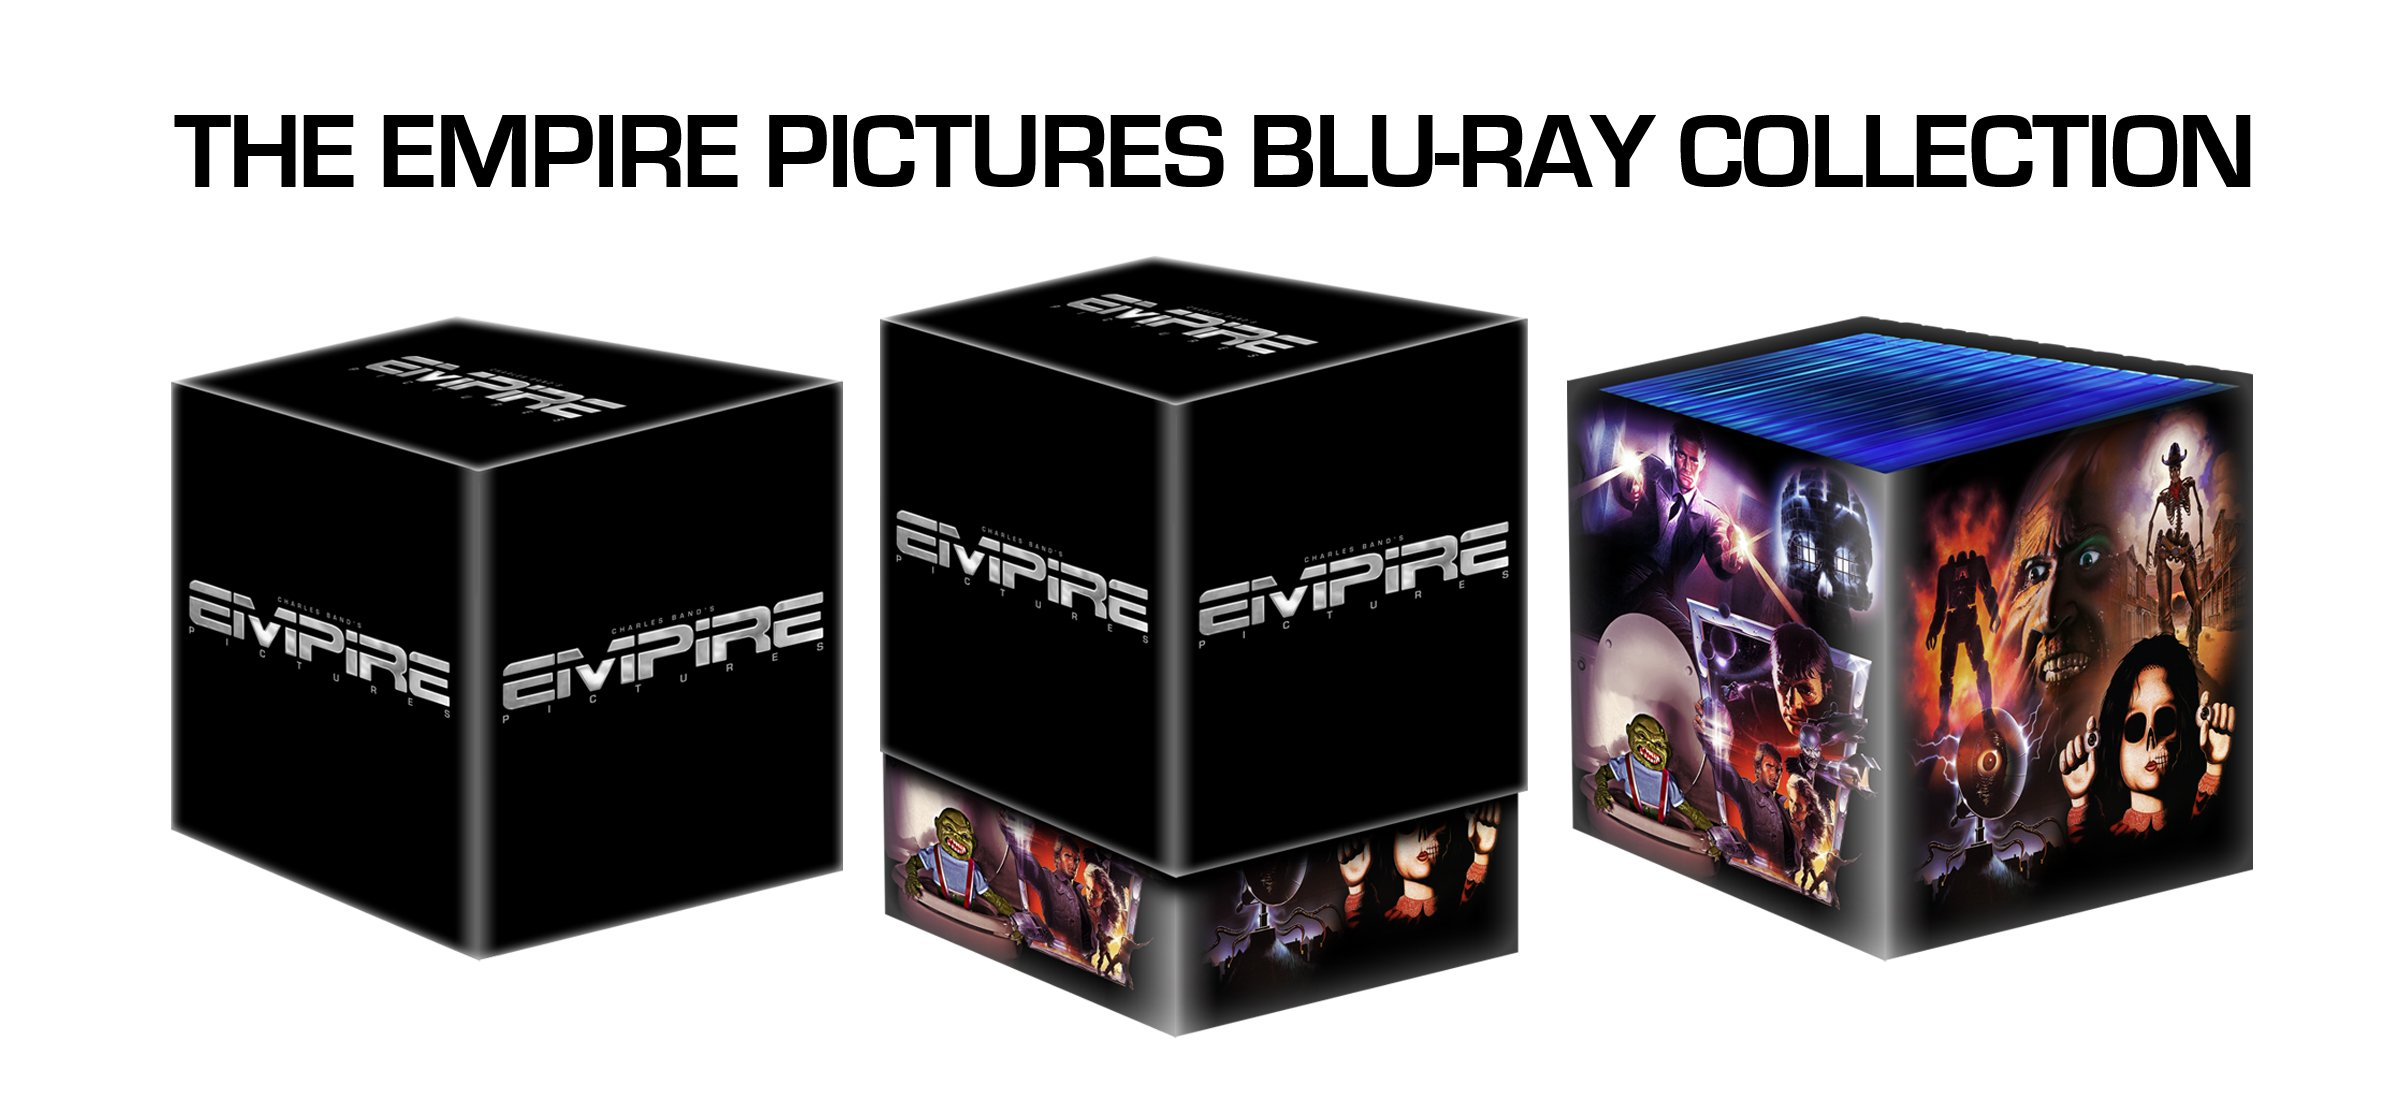 The Empire Pictures Blu-ray Collection